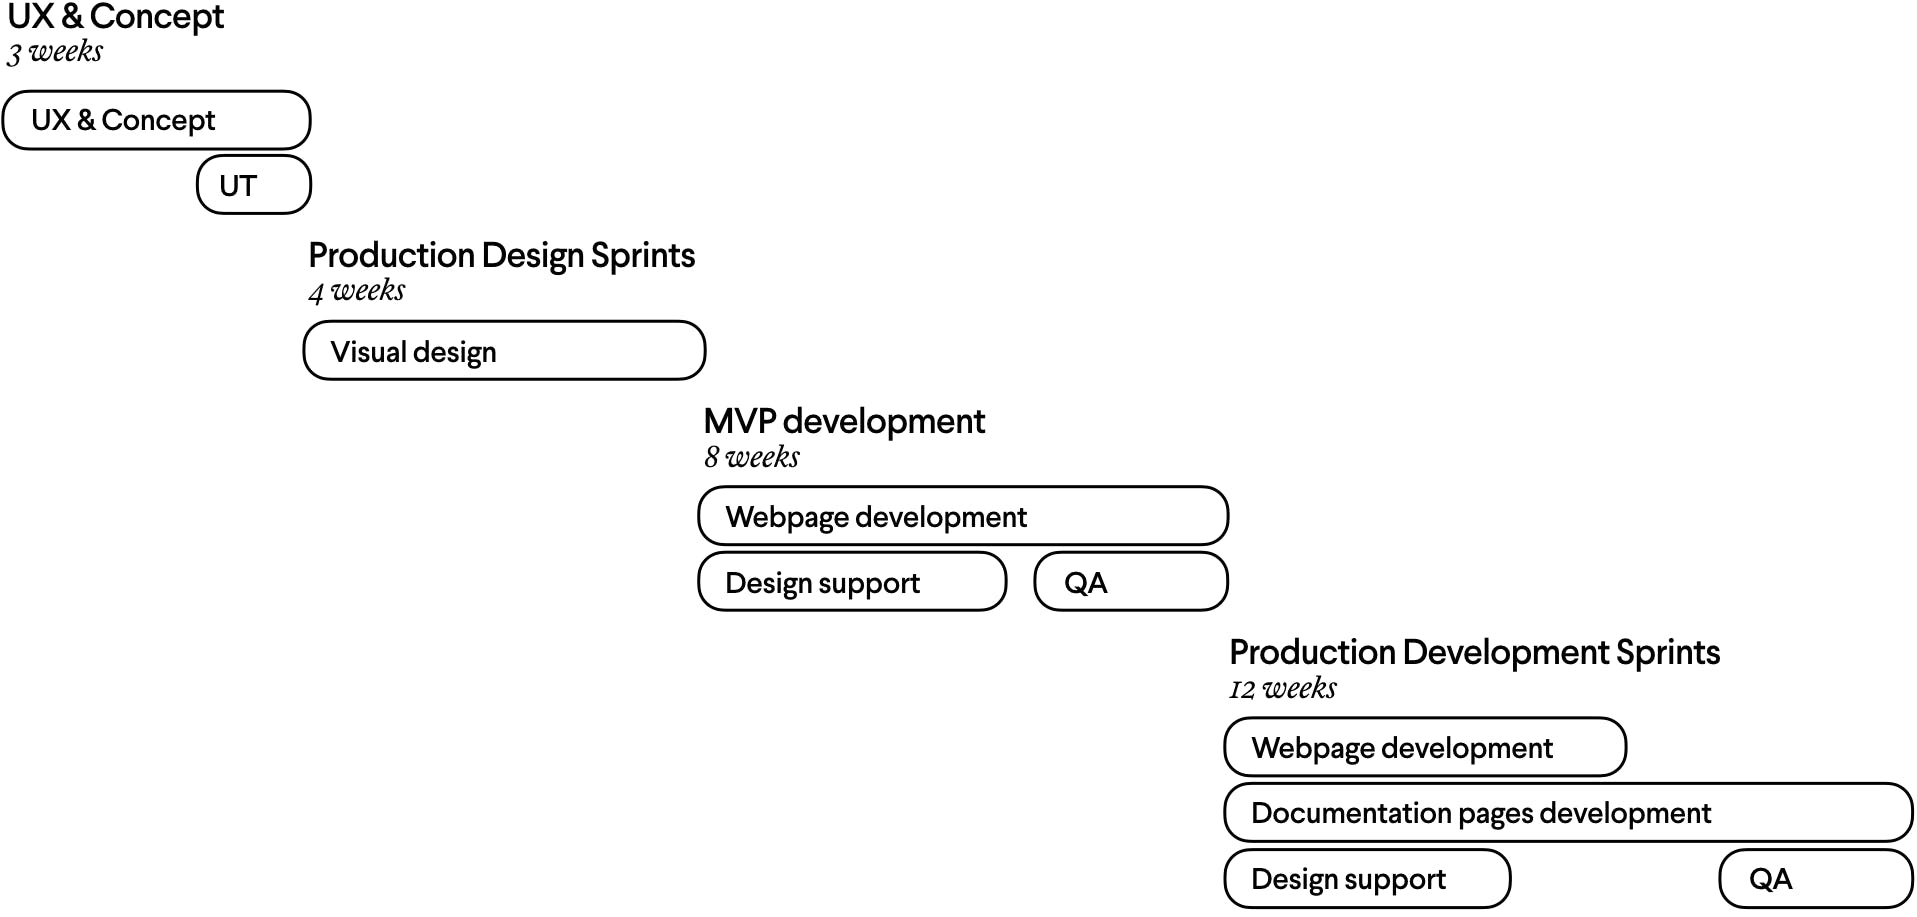 Map of project showing timeline of deliverables across UX and concept, MVP, production design and development sprints